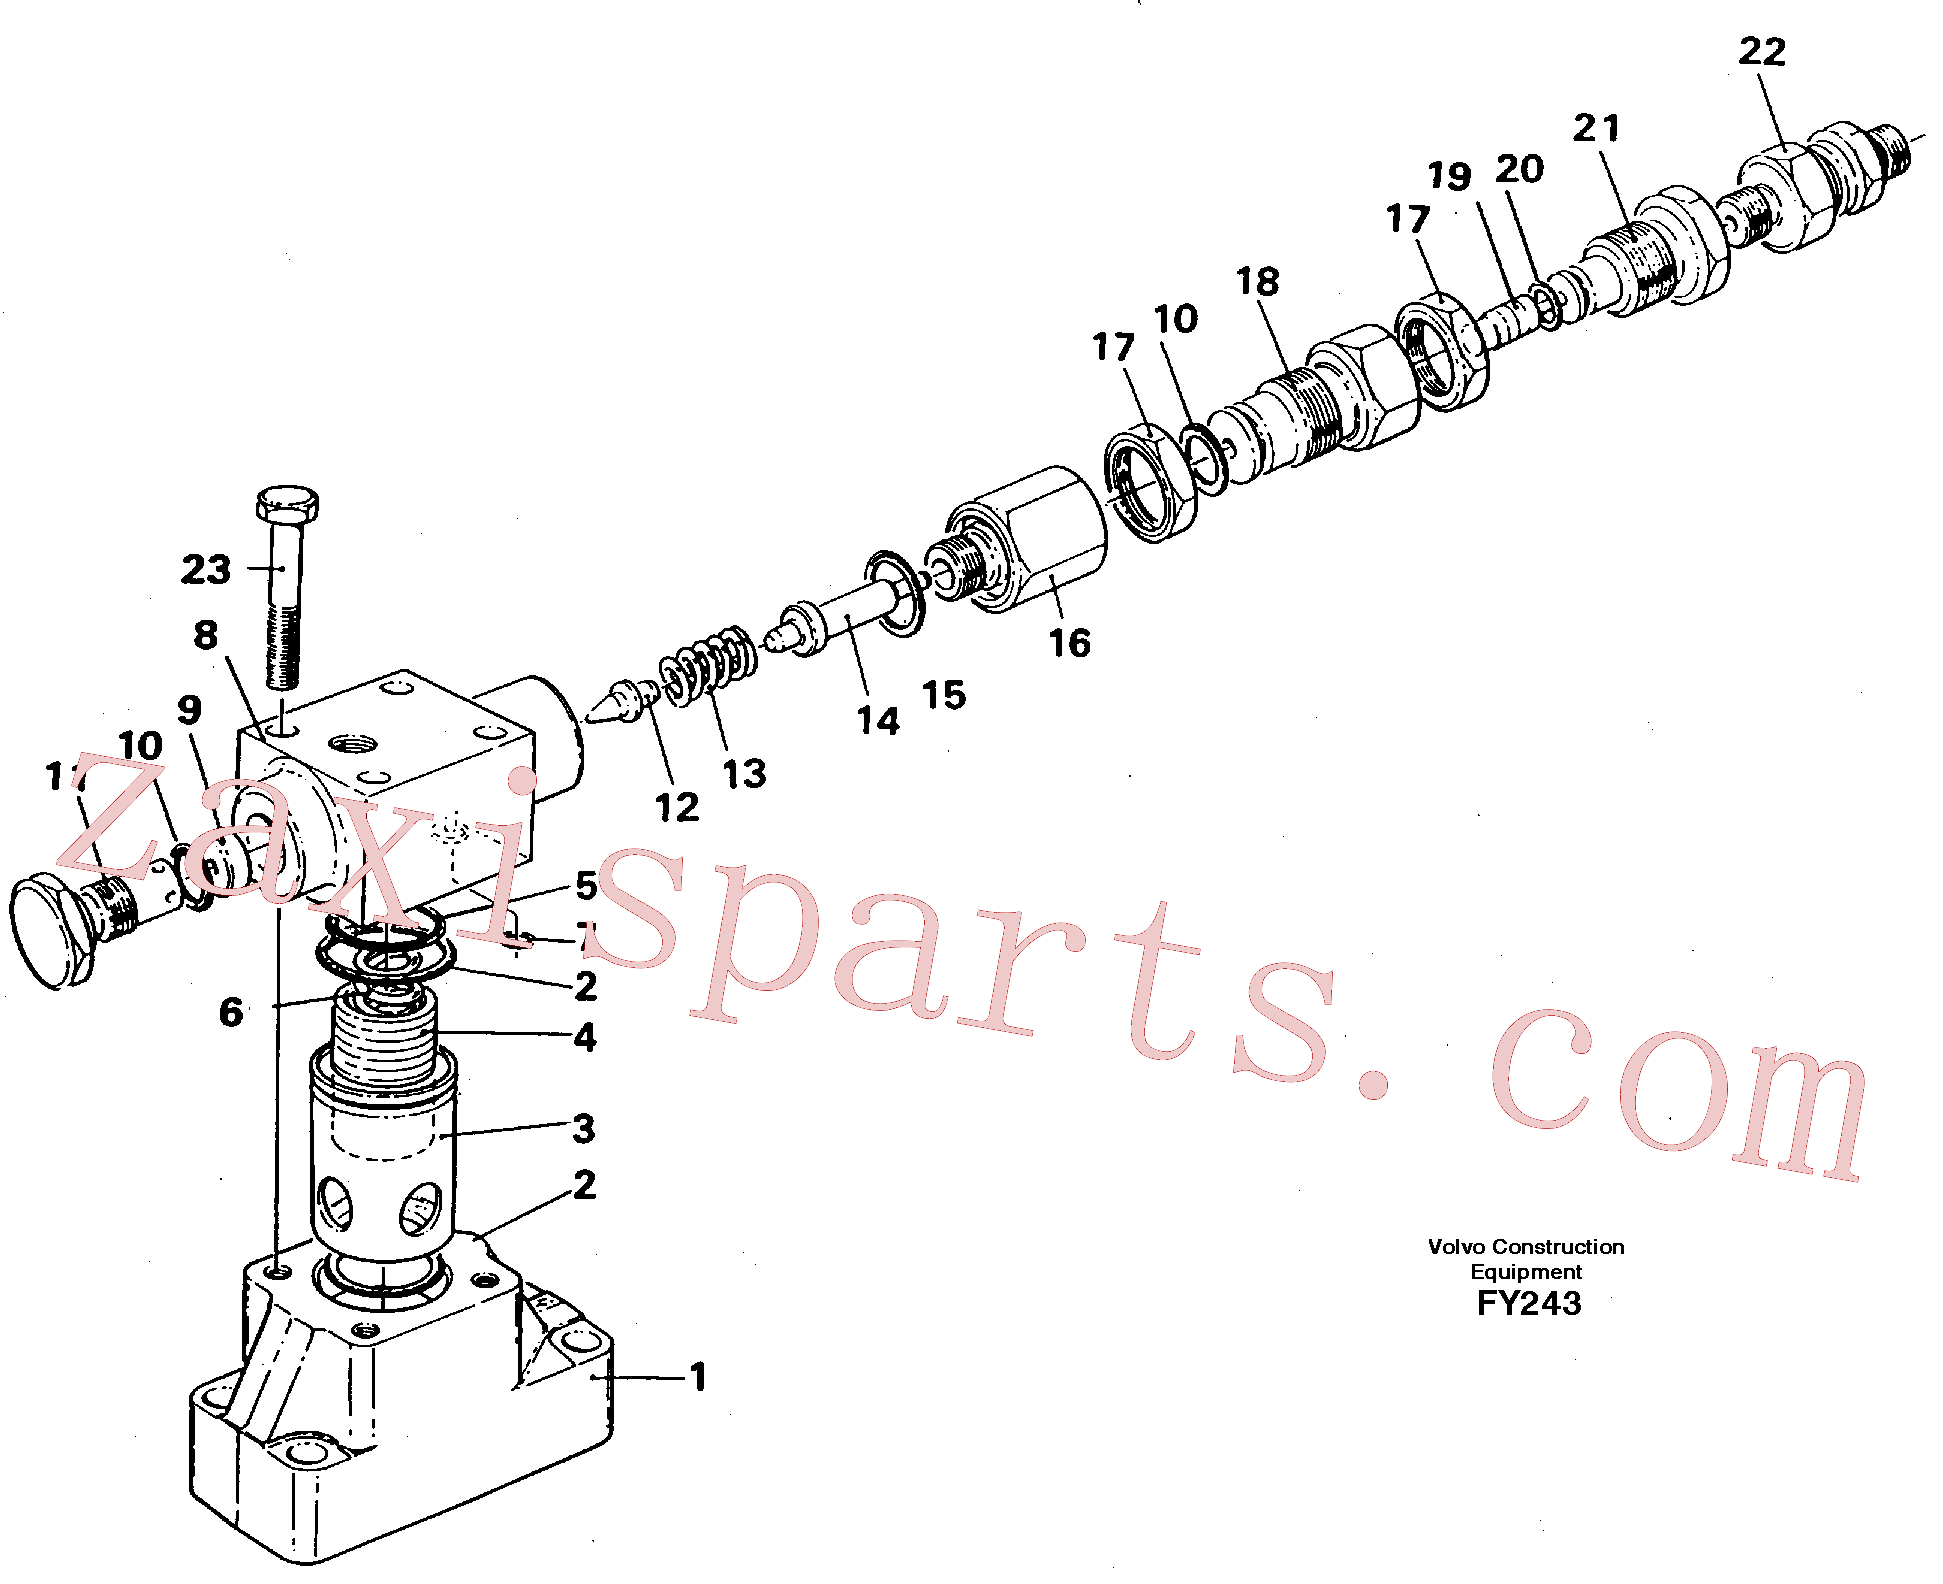 VOE14340724 for Volvo Pressure limiting valve(FY243 assembly)